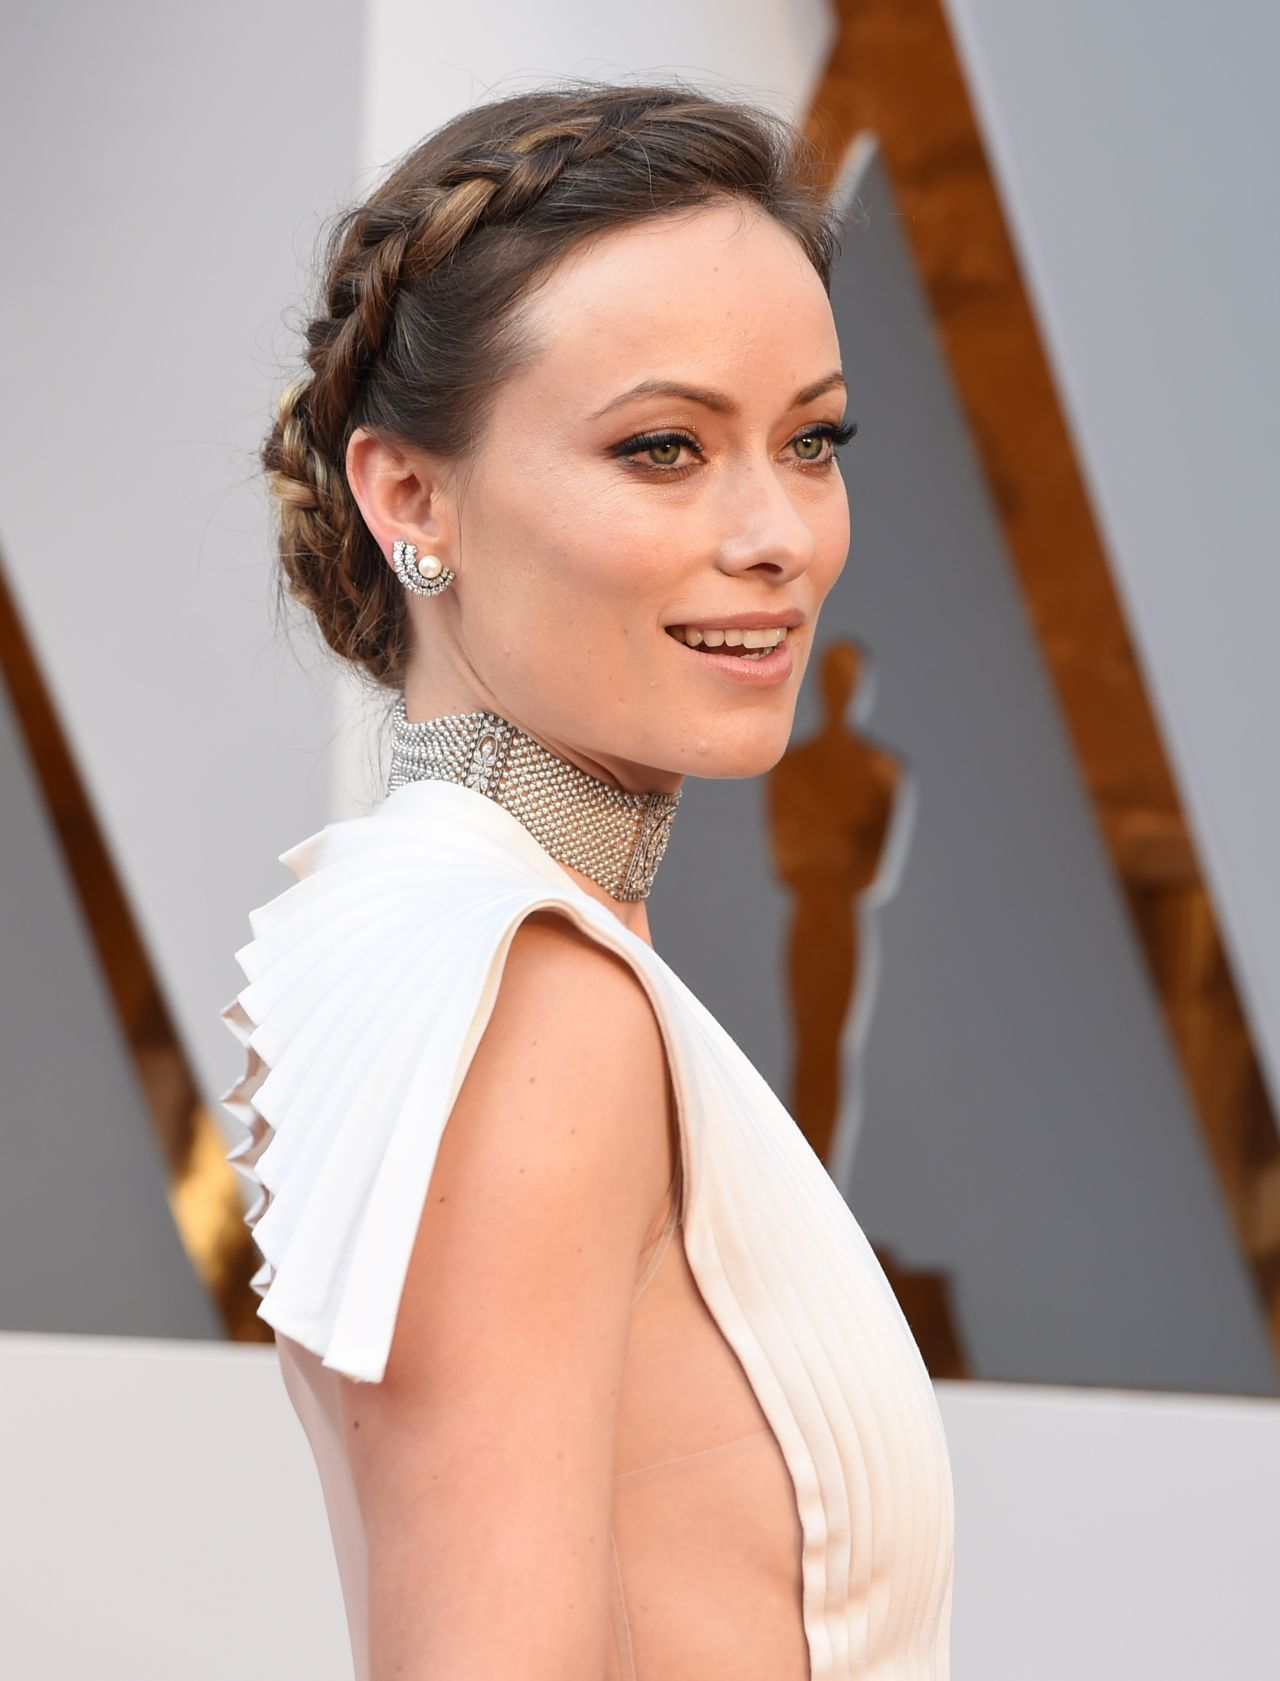 Olivia Wilde Profile And New Pictures 2013: Oscars 2016 In Hollywood, Part II